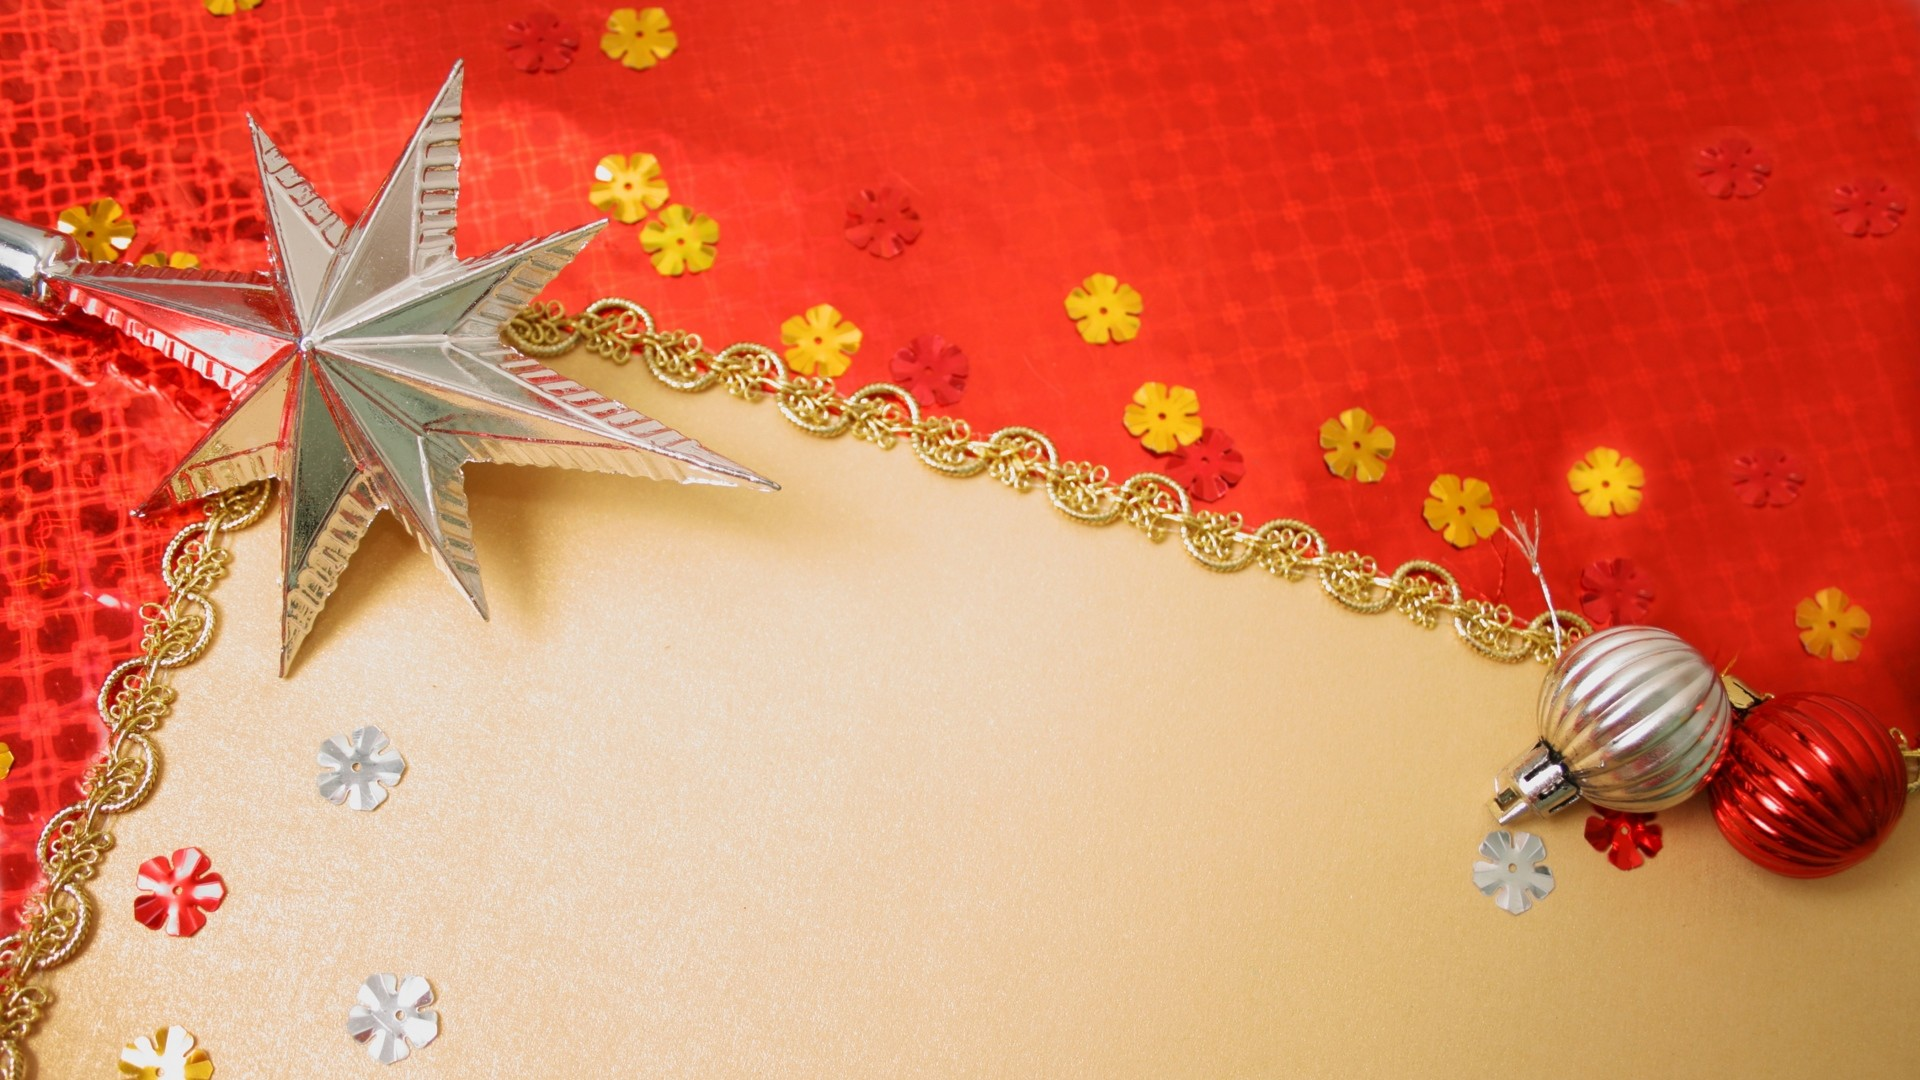 Preview wallpaper gold, red background, new year, toys 1920×1080